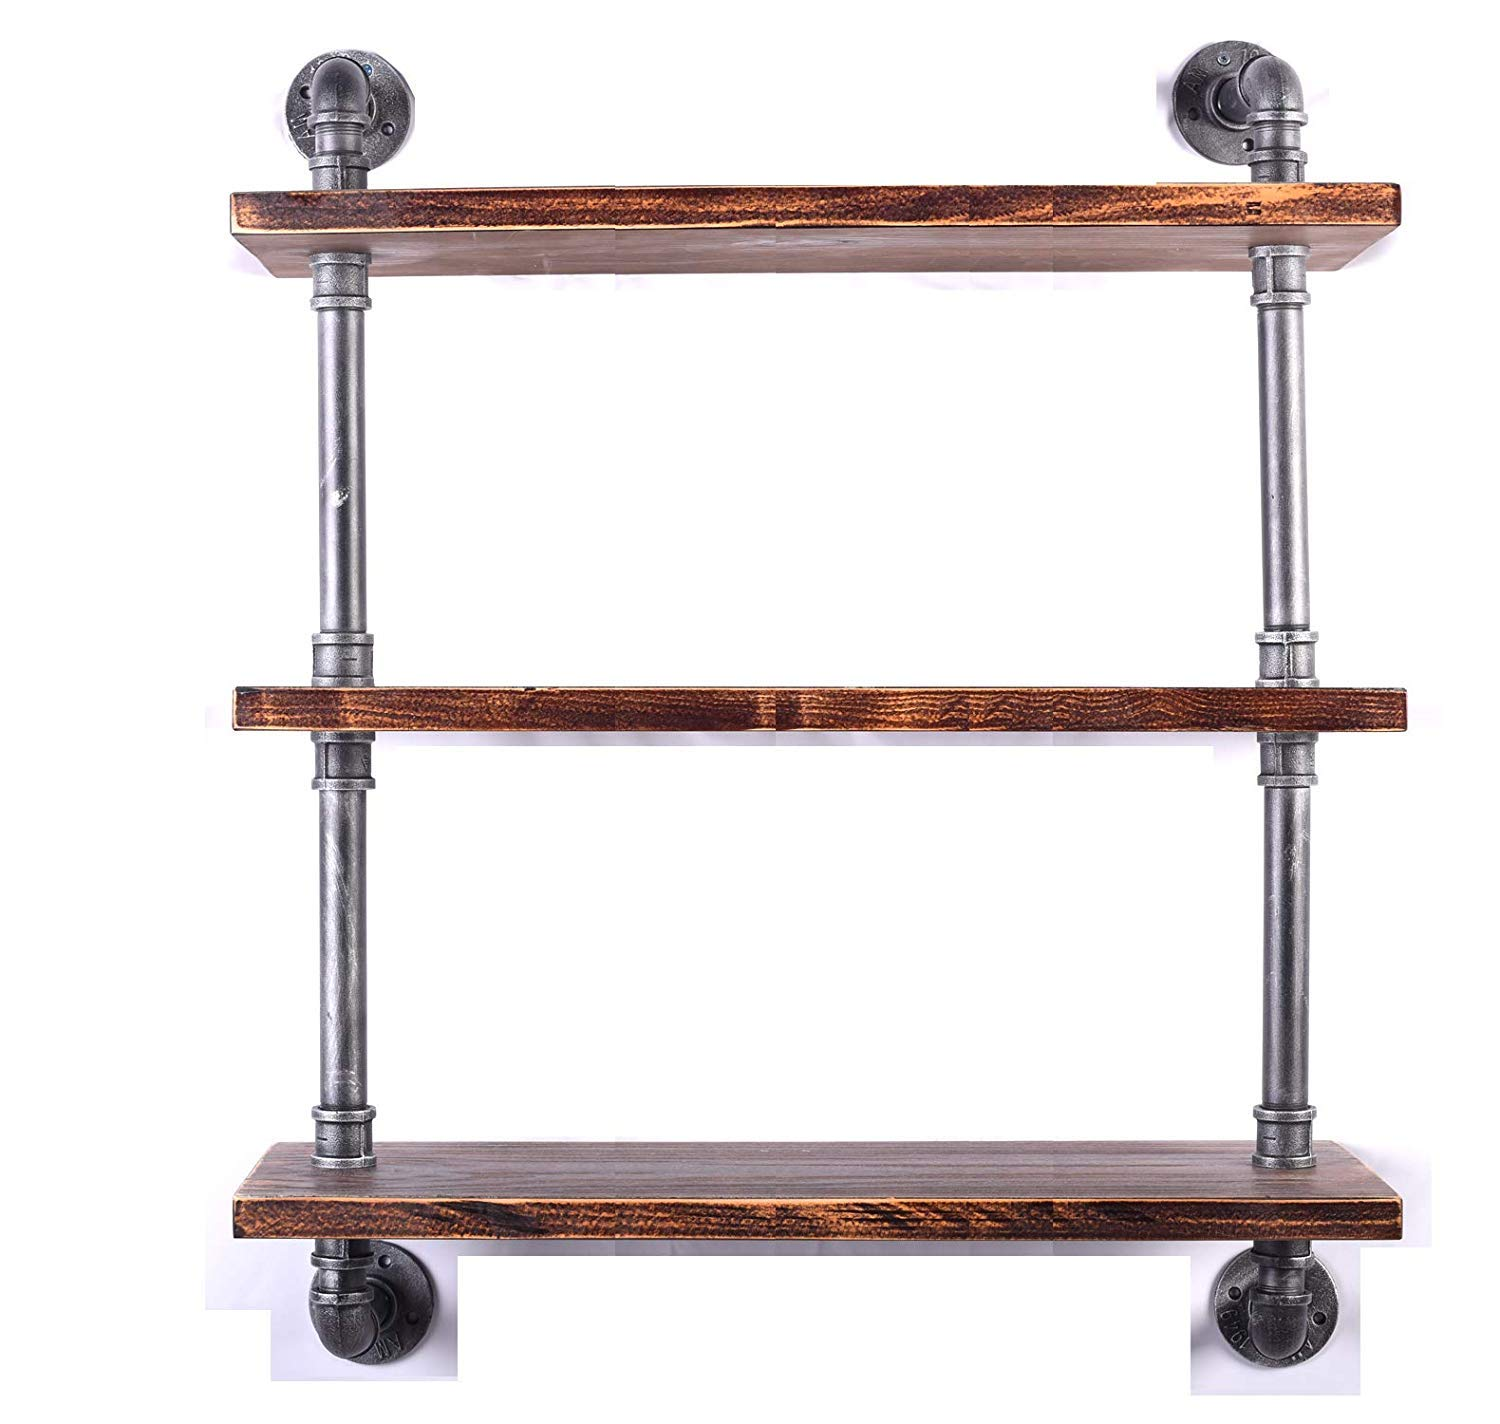 "Diwhy Industrial Pipe Shelving Bookshelf Rustic Modern Wood Ladder Storage Shelf 3 Tiers Retro Wall Mount Pipe Dia 32mm Design DIY Shelving (Silver, L 36"") - 【Retro Style】:Rustic industrial pipe shelf in black finish.Iron pipes and reclaimed real wood composition in vintage style.Storage and decorations.It can also be used outdoors.Extensively anti-rust treatment. - Electroplated finish. 【Size】:Made from quality metal pipe and pine wood. Overall size: length 36in x depth 10in x height 39in.Board size: length 36in x depth 10in x thickness 1.18in.Water pipe diameter: 1.26in, Overall Product Weight:33 lb . 【Multi-functional】:The floating shelves are versatile, such as bathroom accessories, towel holder, bookcase, spice racks. - wall-shelves, living-room-furniture, living-room - 71XIpzkoLdL -"